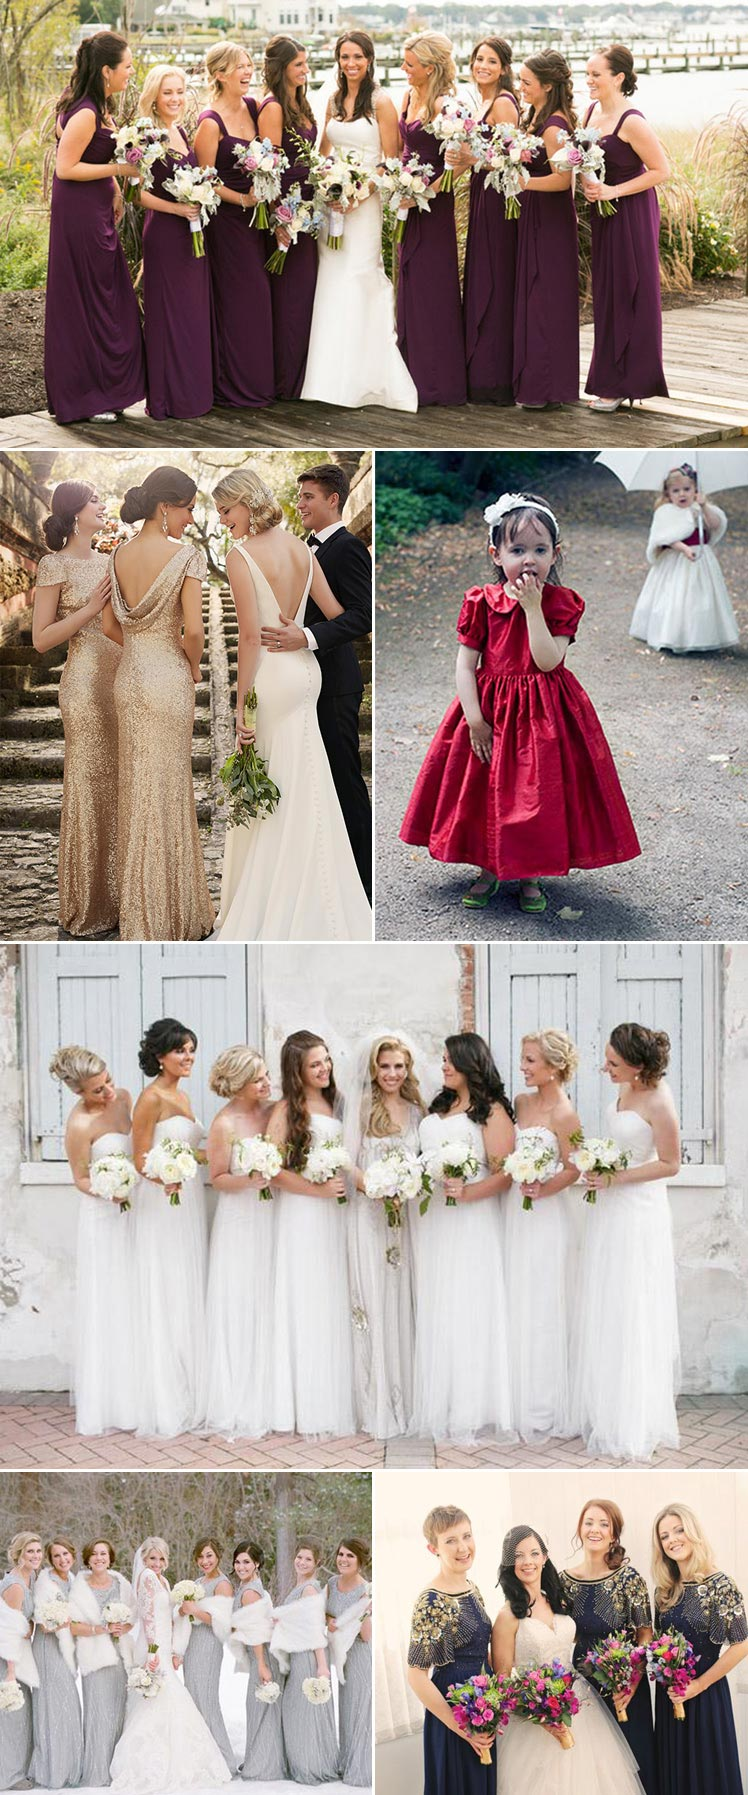 Style ideas for your bridesmaids at your winter wedding